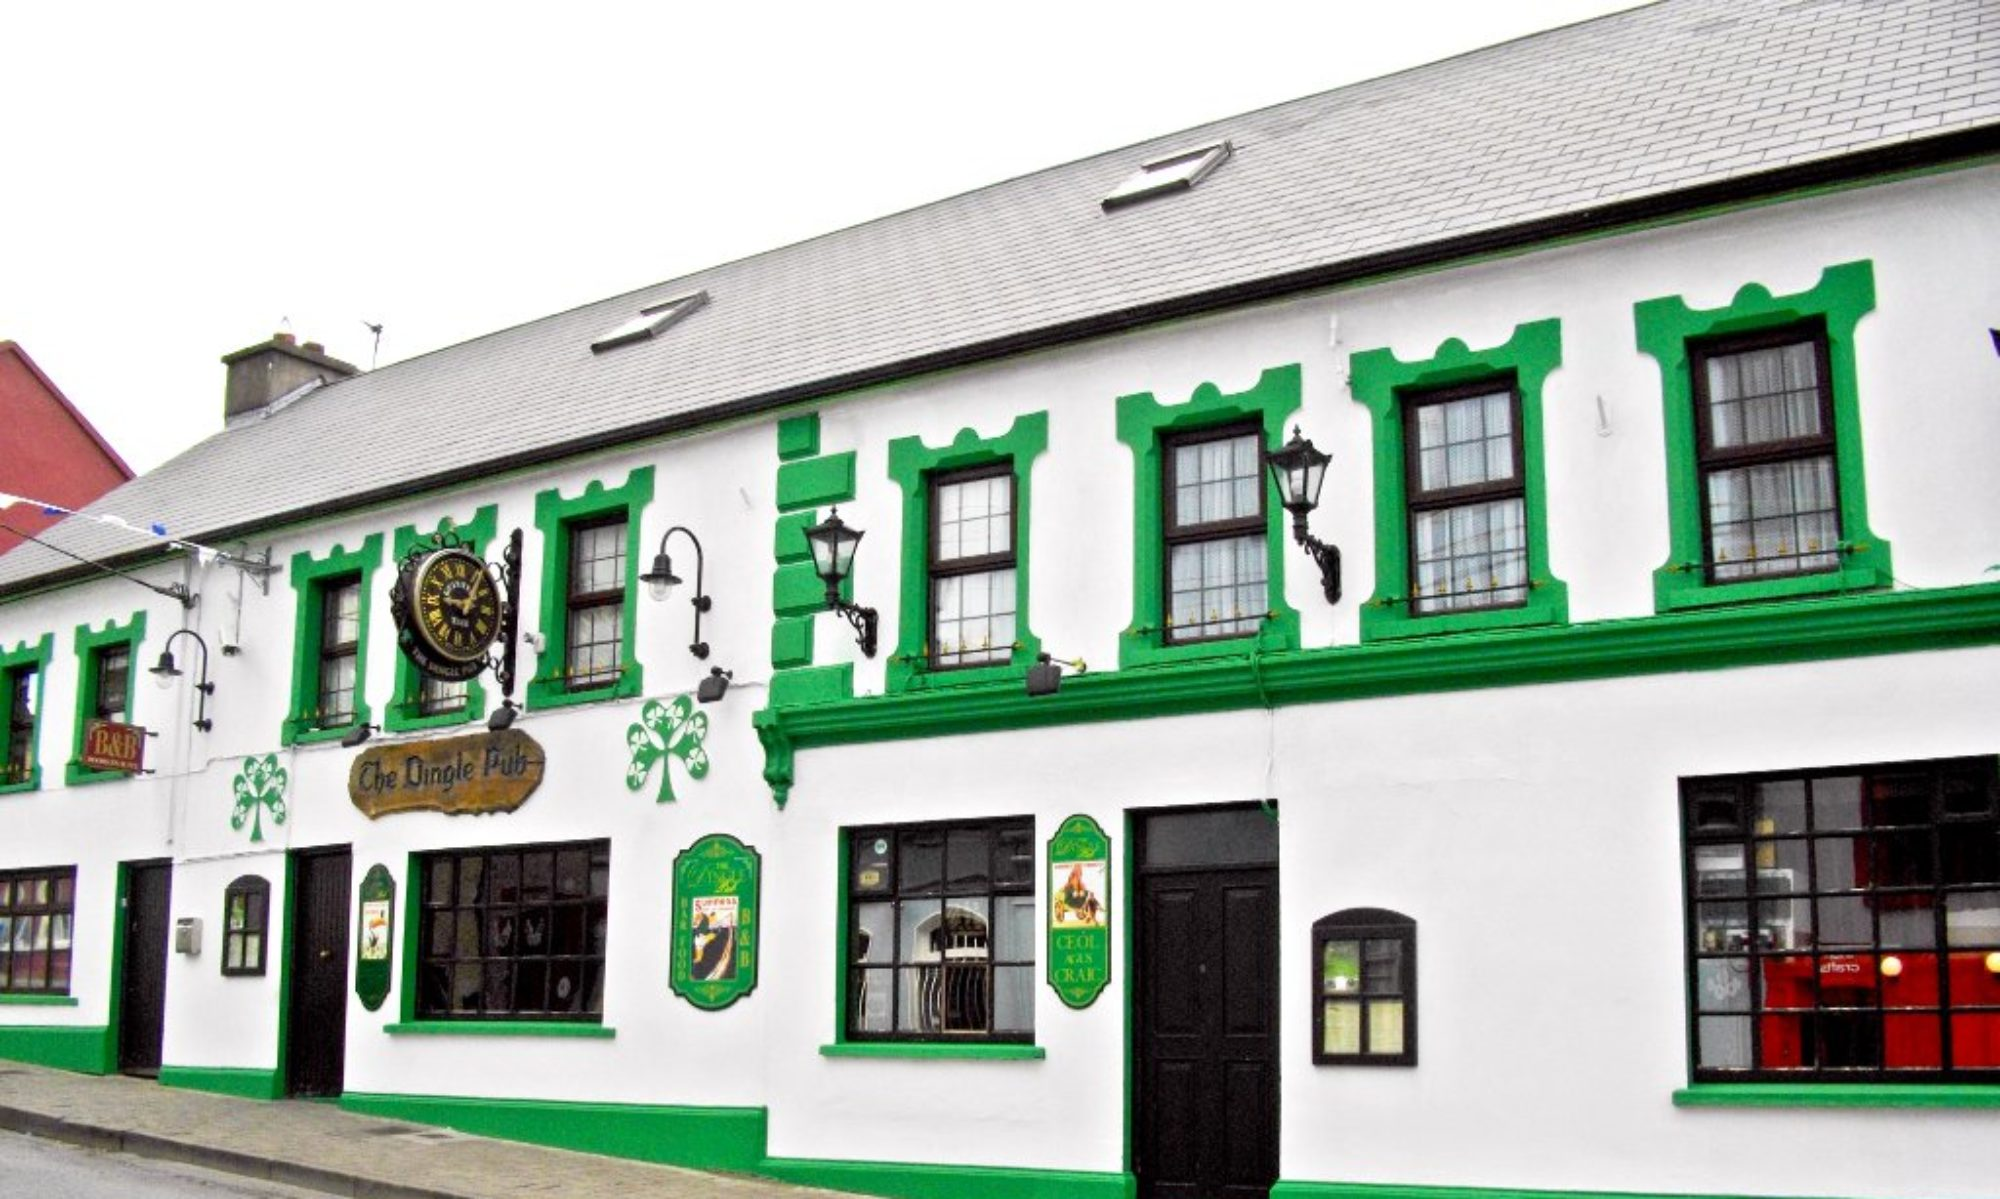 The Dingle Pub